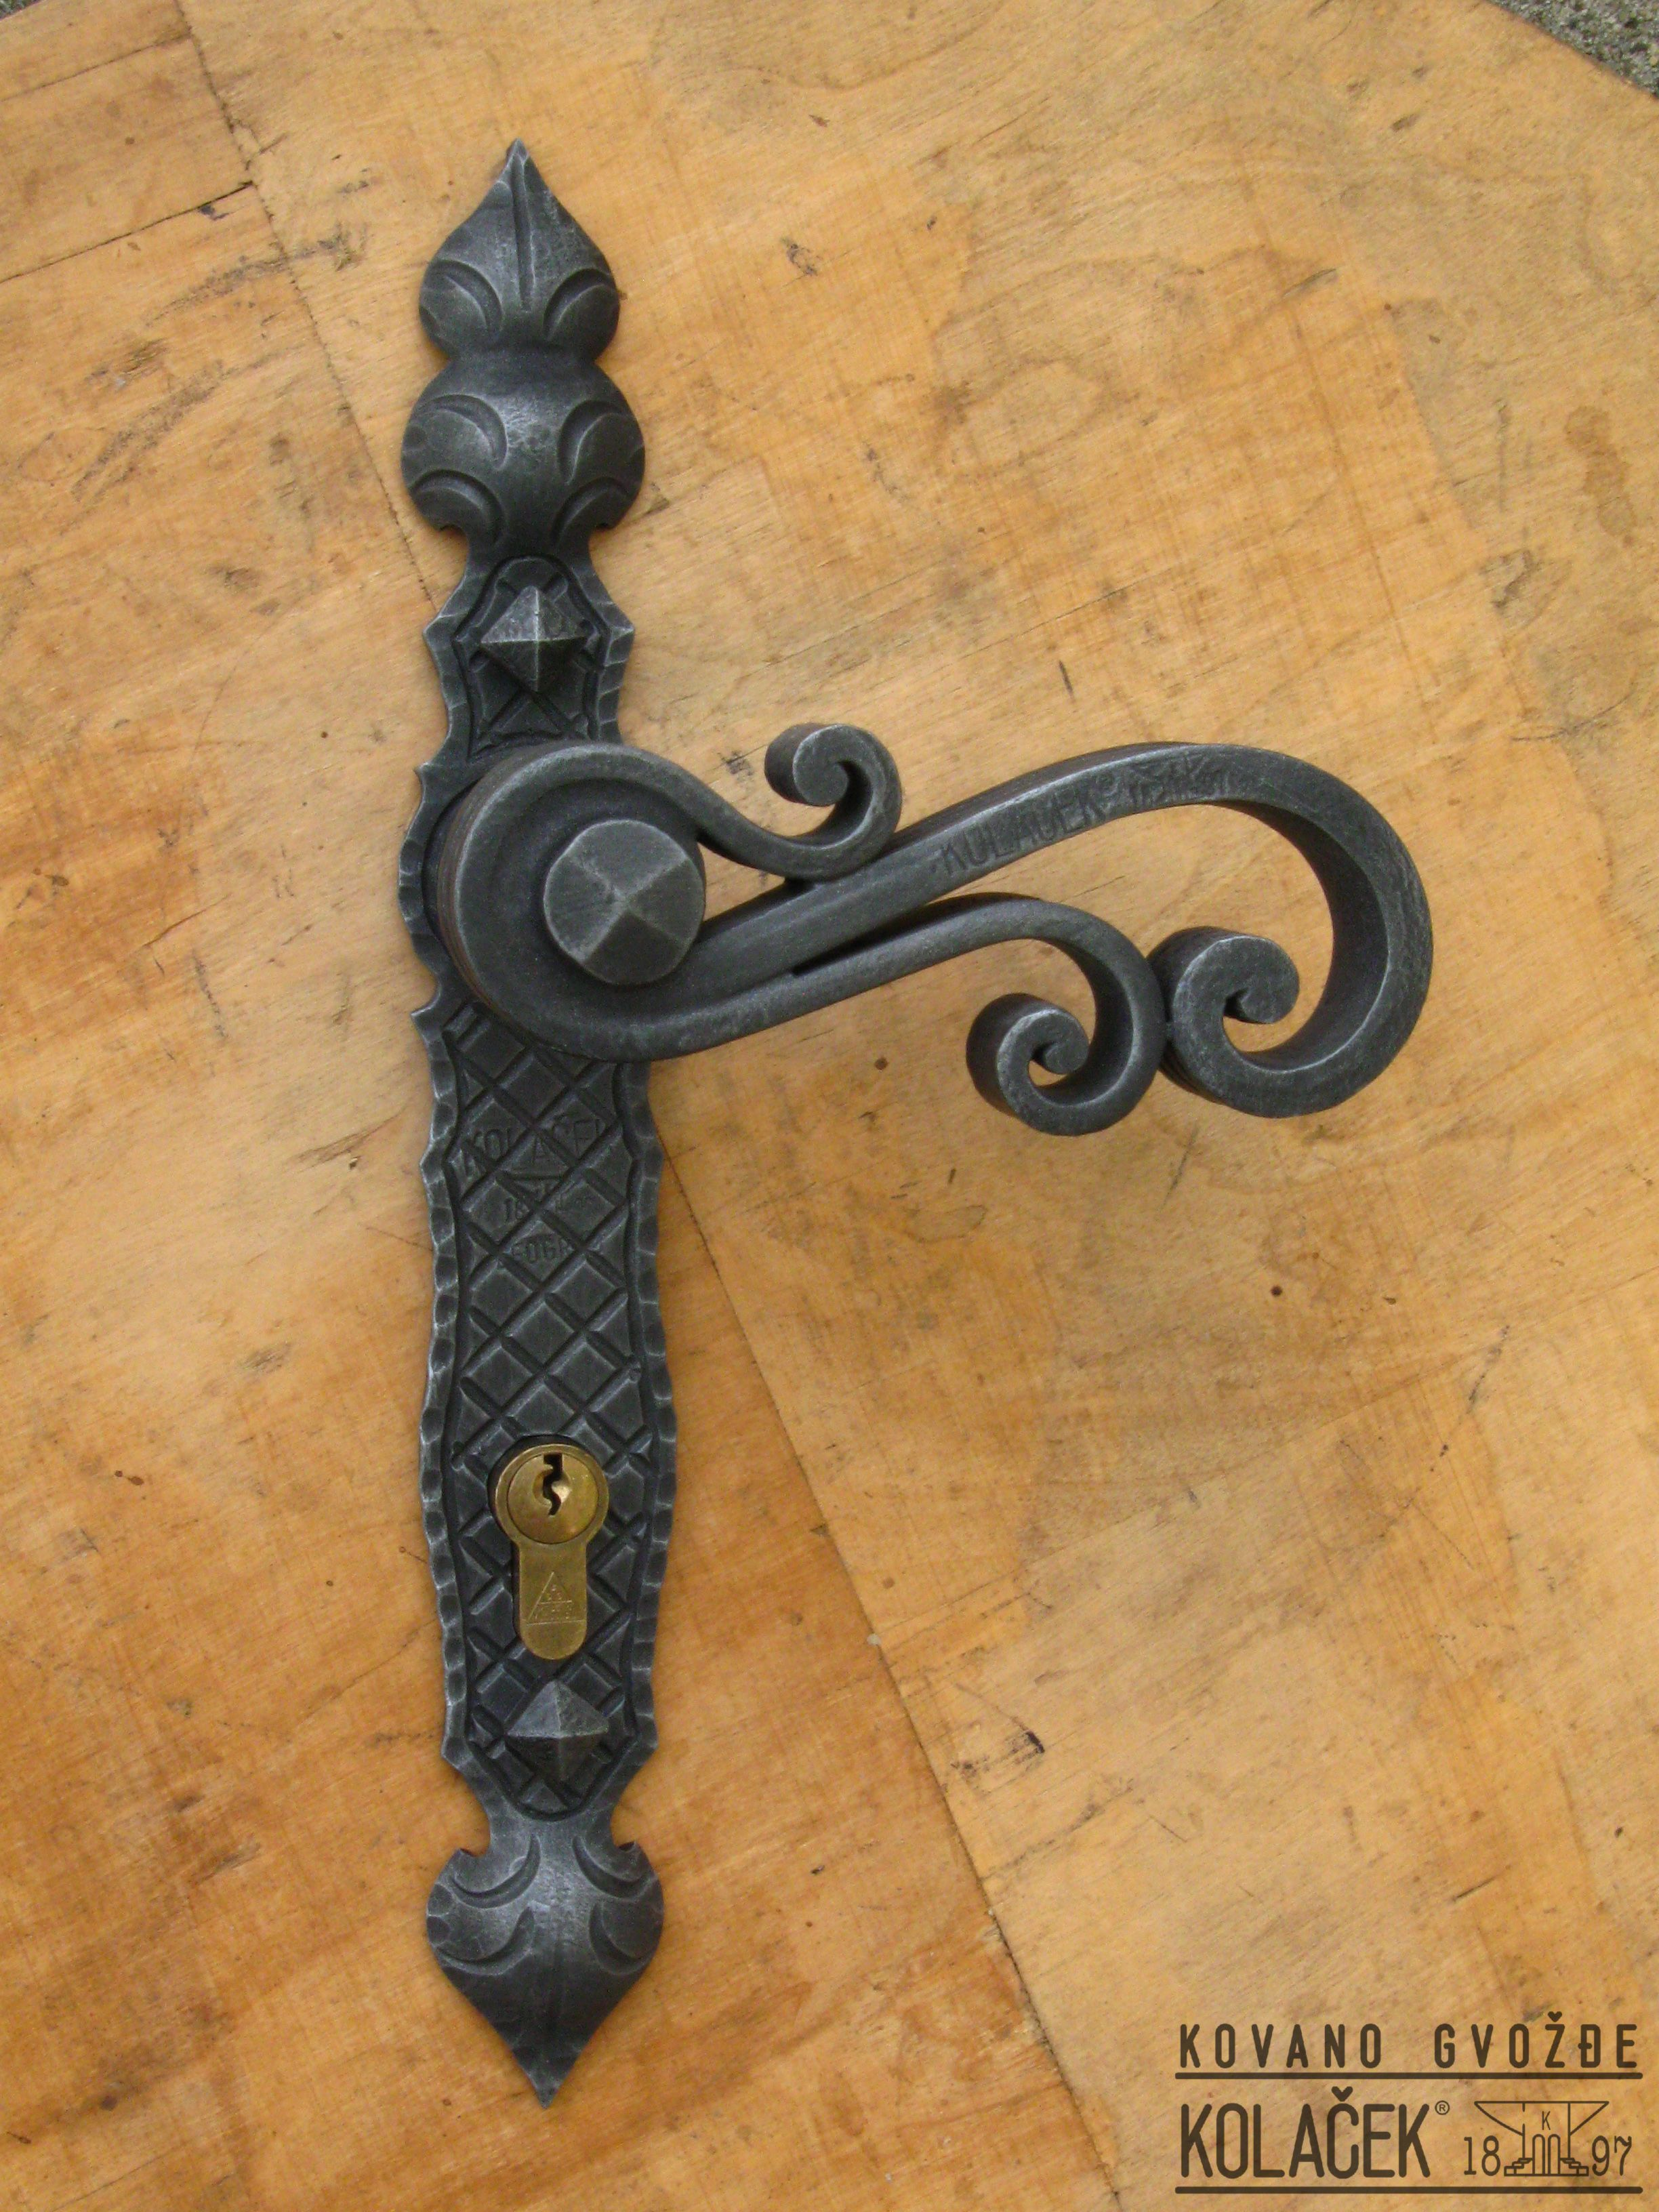 Door Handle Wrought Iron Kolacek 1897 Kovano Gvoždje